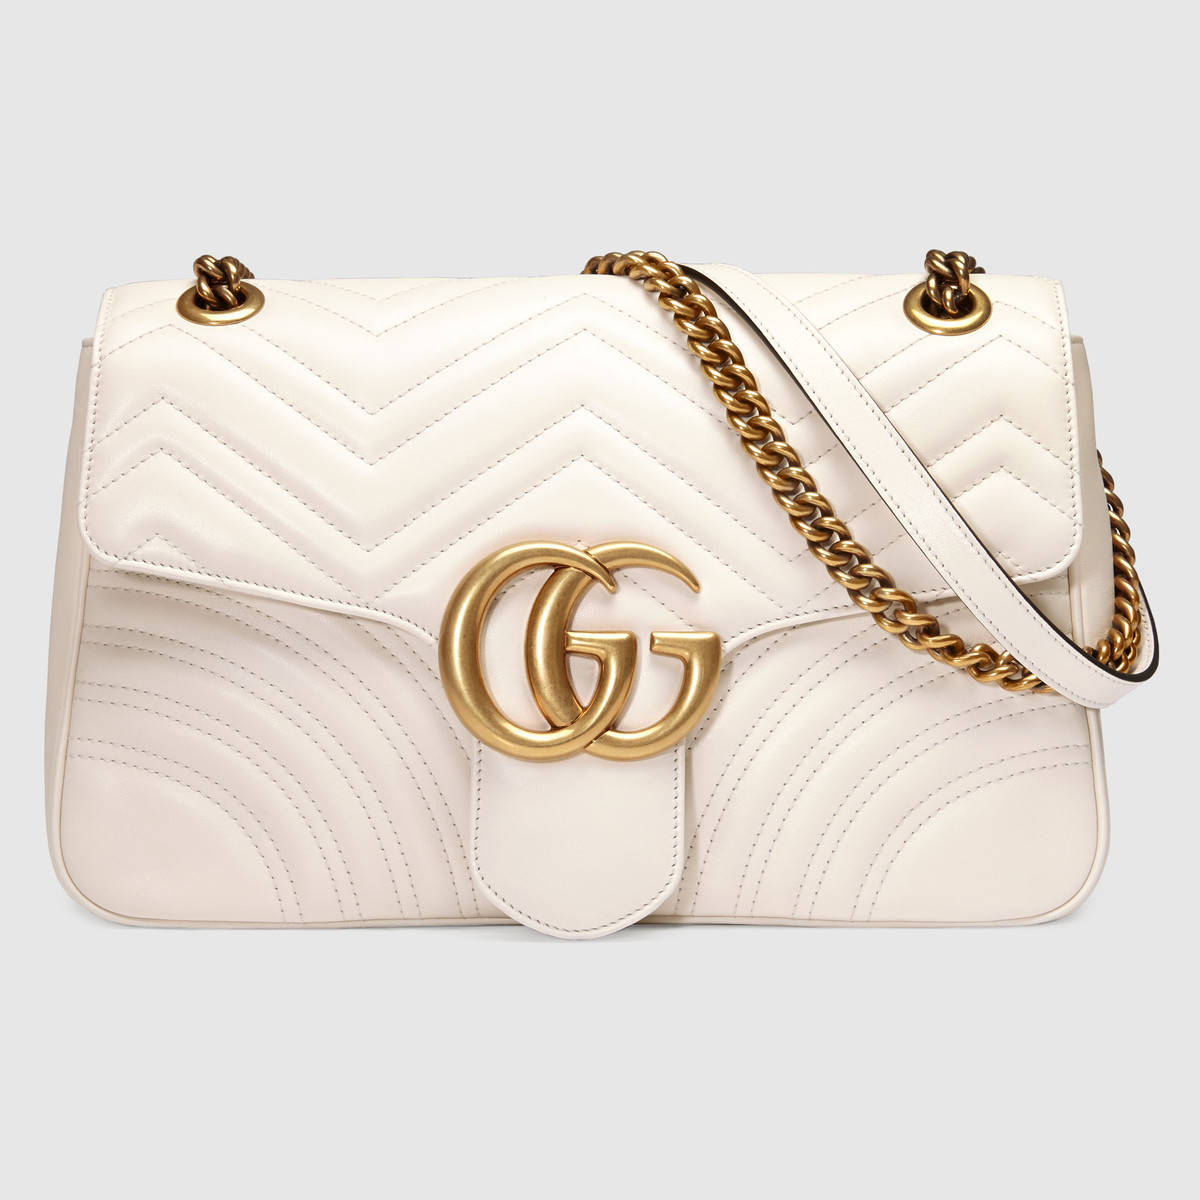 443496_DRW3T_9022_001_066_0010_Light-GG-Marmont-matelass-shoulder-bag.jpg